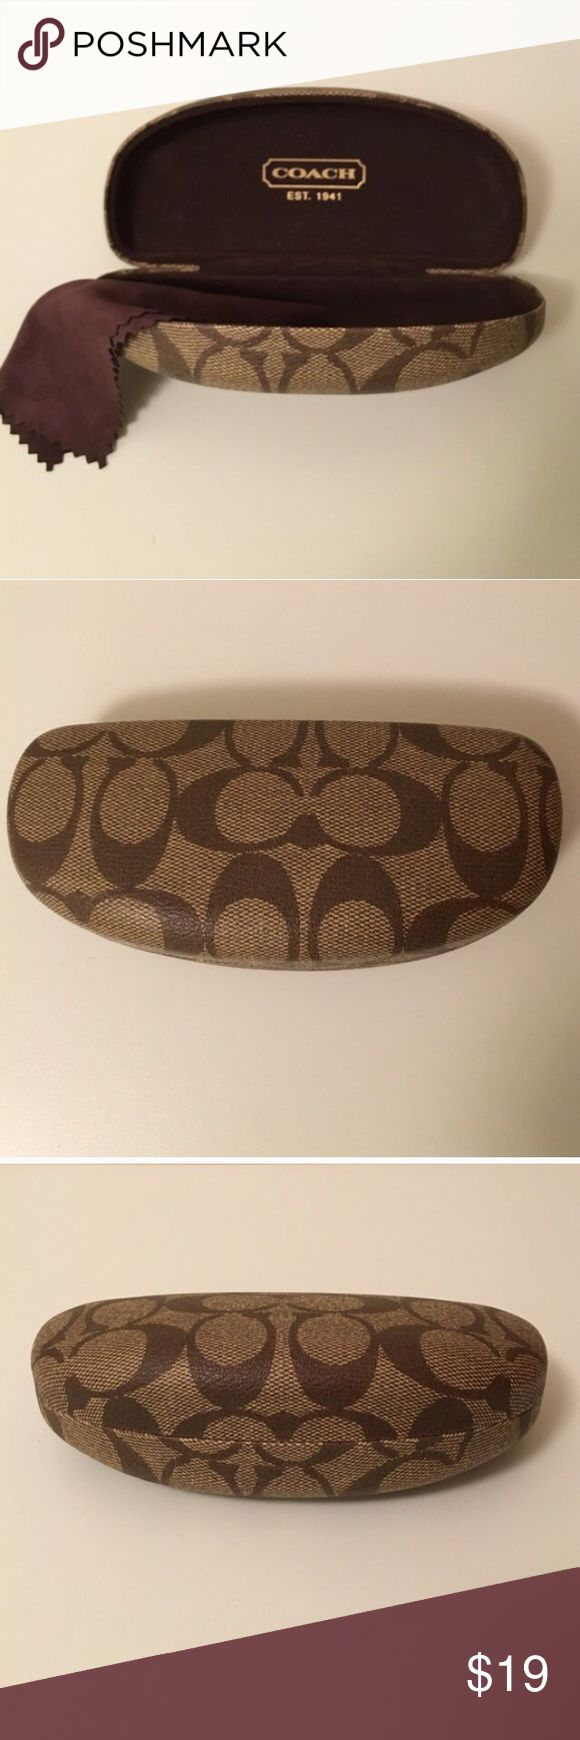 """EUC COACH hard case for glasses / sunglasses Hard case with signature COACH logo pattern in tan and brown for your eyeglasses or sunglasses. Spring-loaded hinge to keep them safely tucked inside. Includes COACH cleaning cloth. Measures 6-1/2"""" x 3"""" x 2"""". Coach Accessories"""